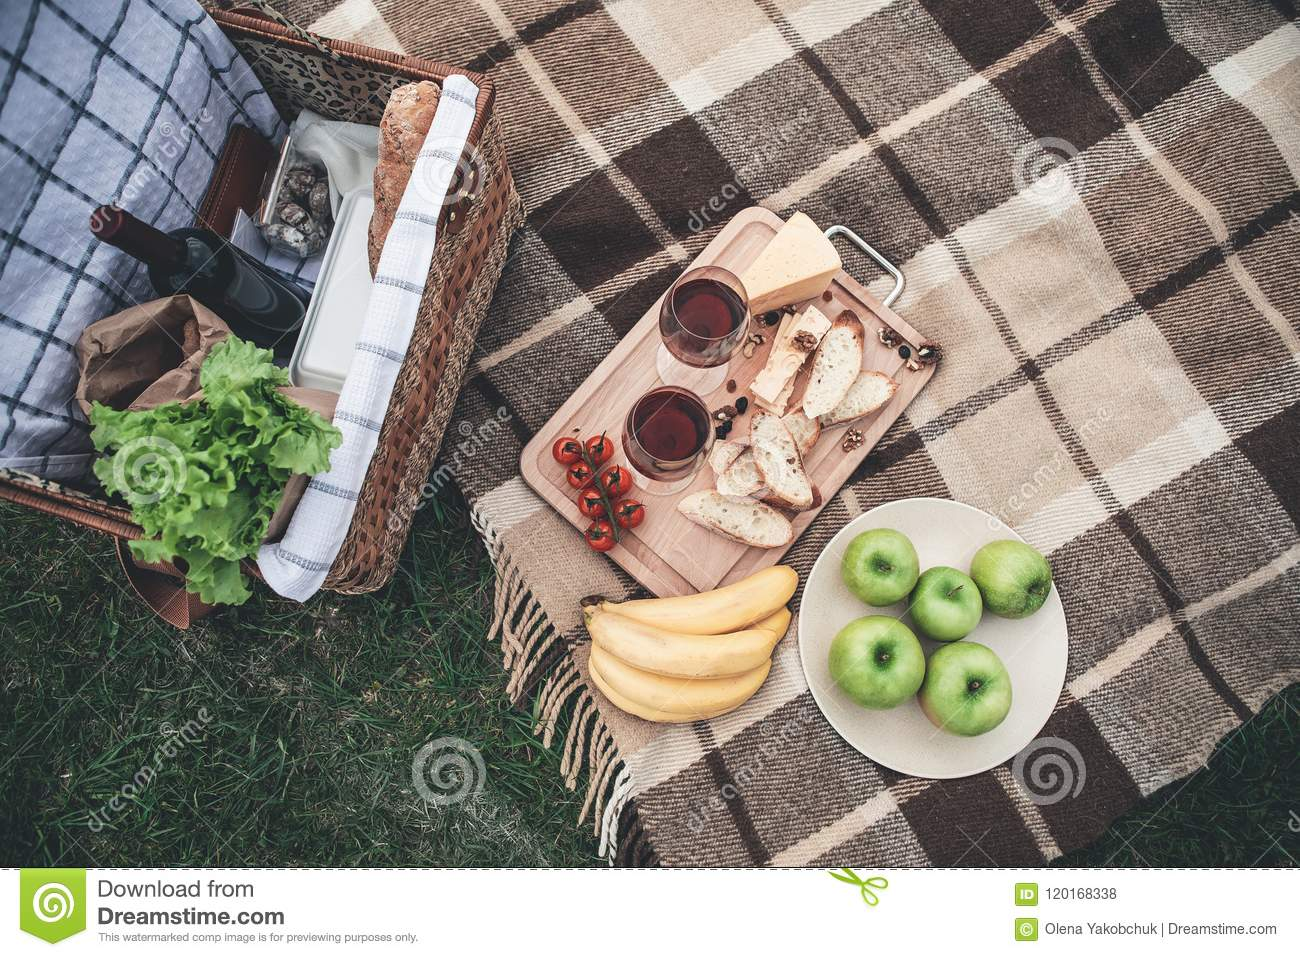 Healthy food and wineglasses on grass for romantic picnic